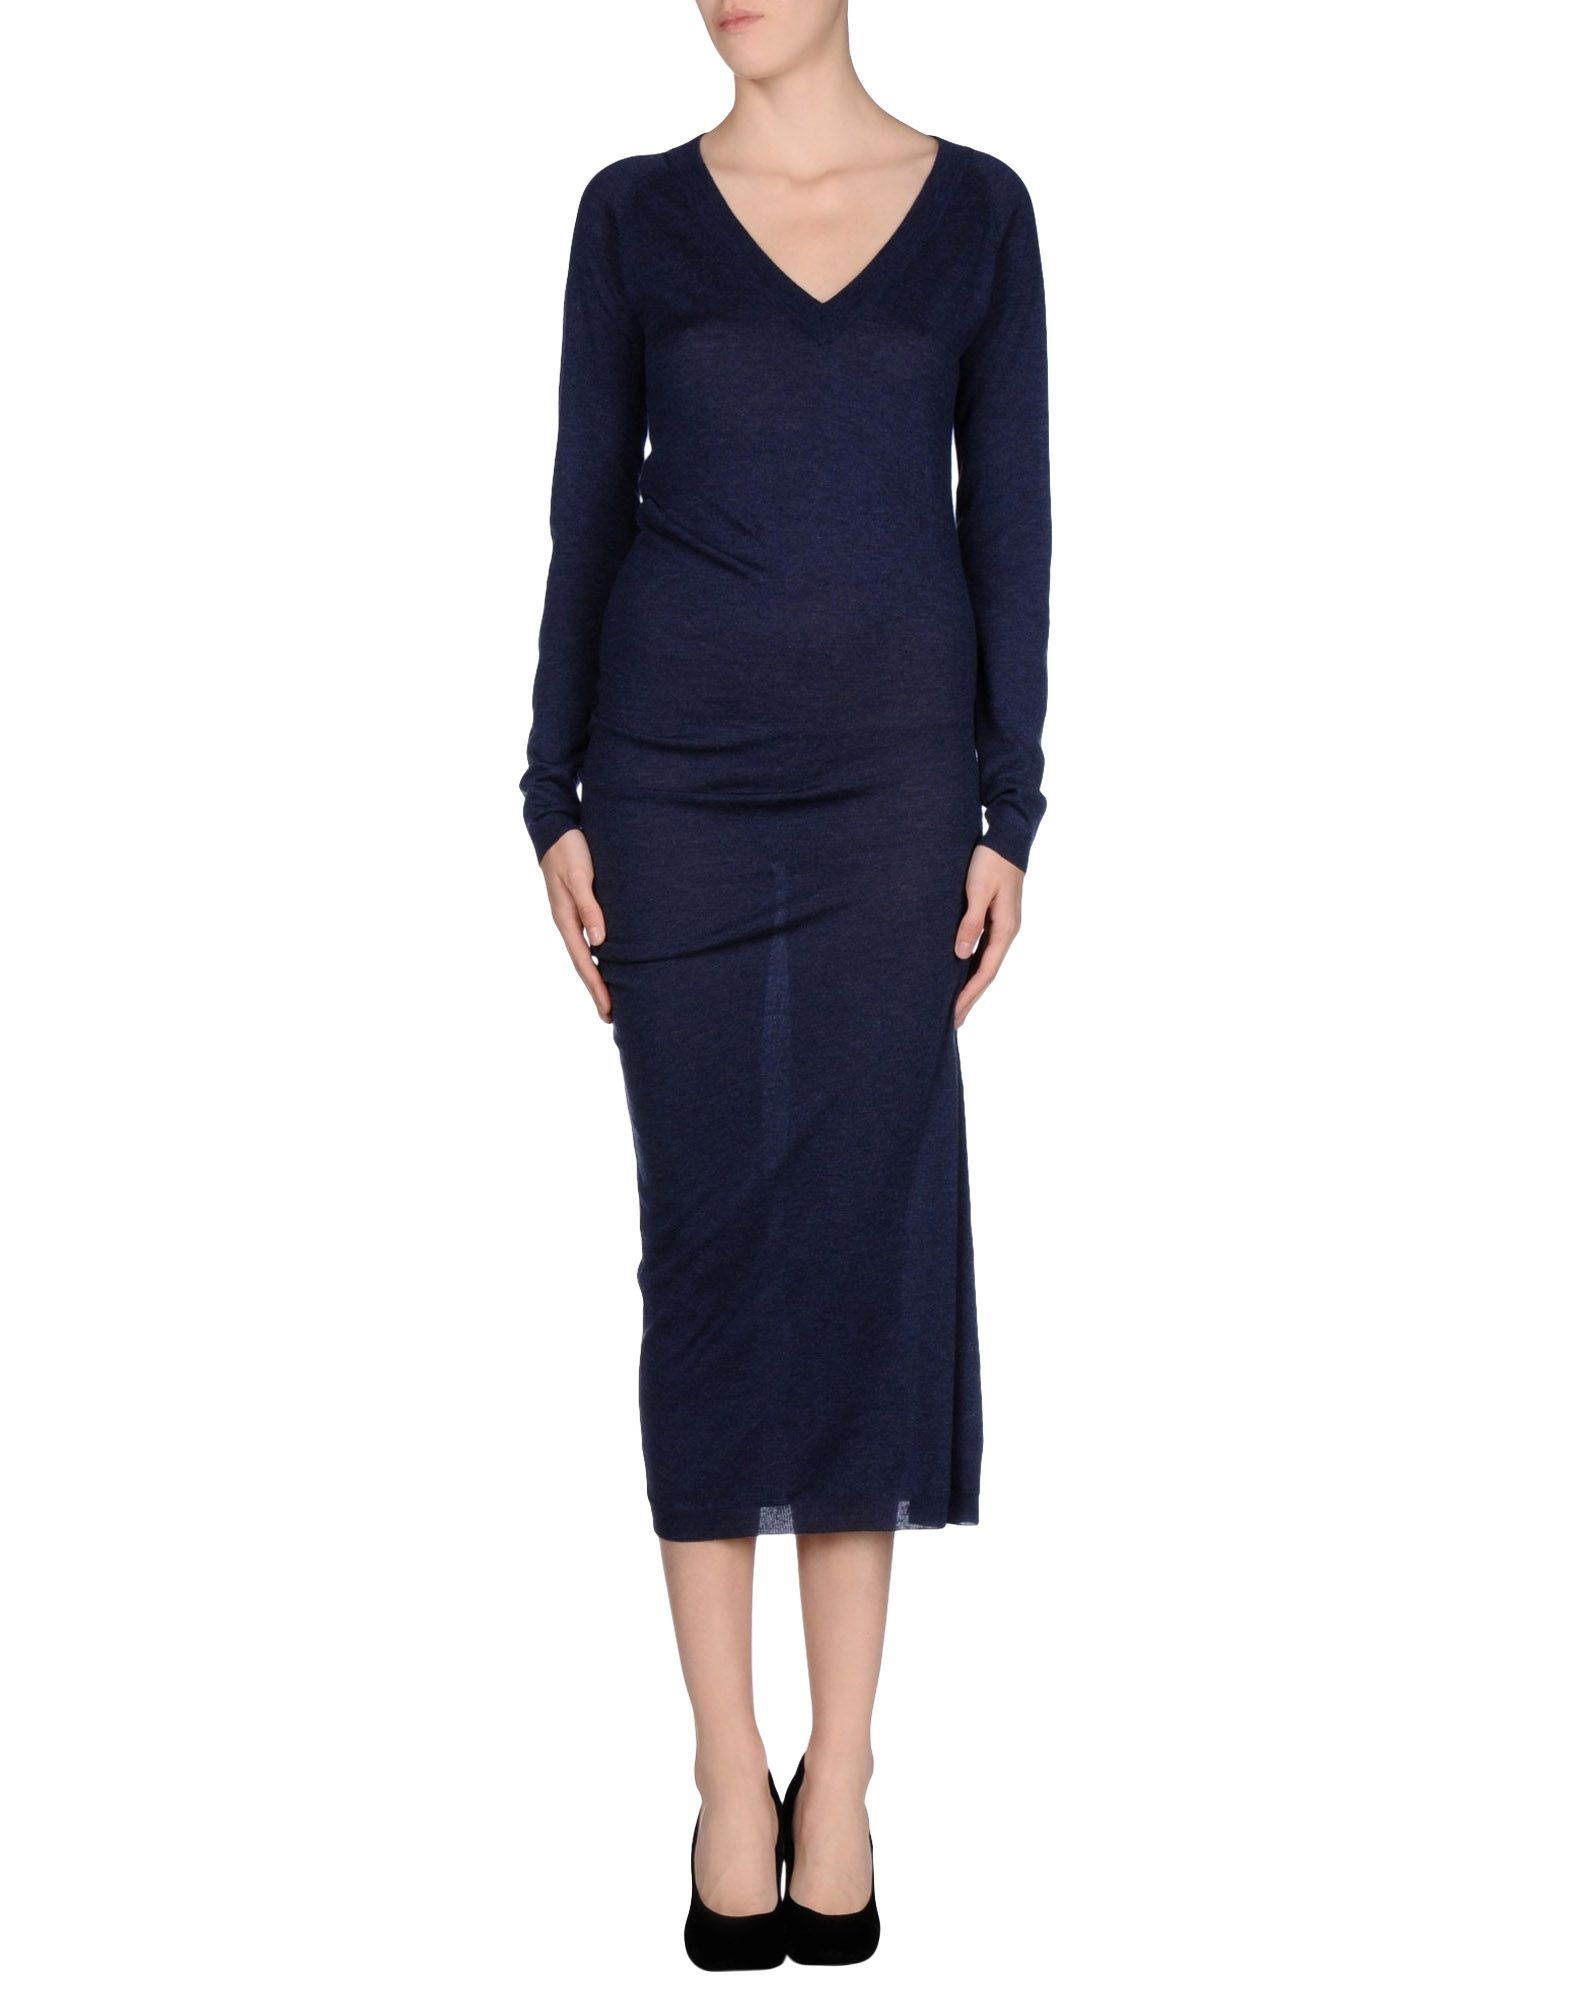 Mm6 by maison martin margiela long dress in blue lyst for Mm6 maison margiela